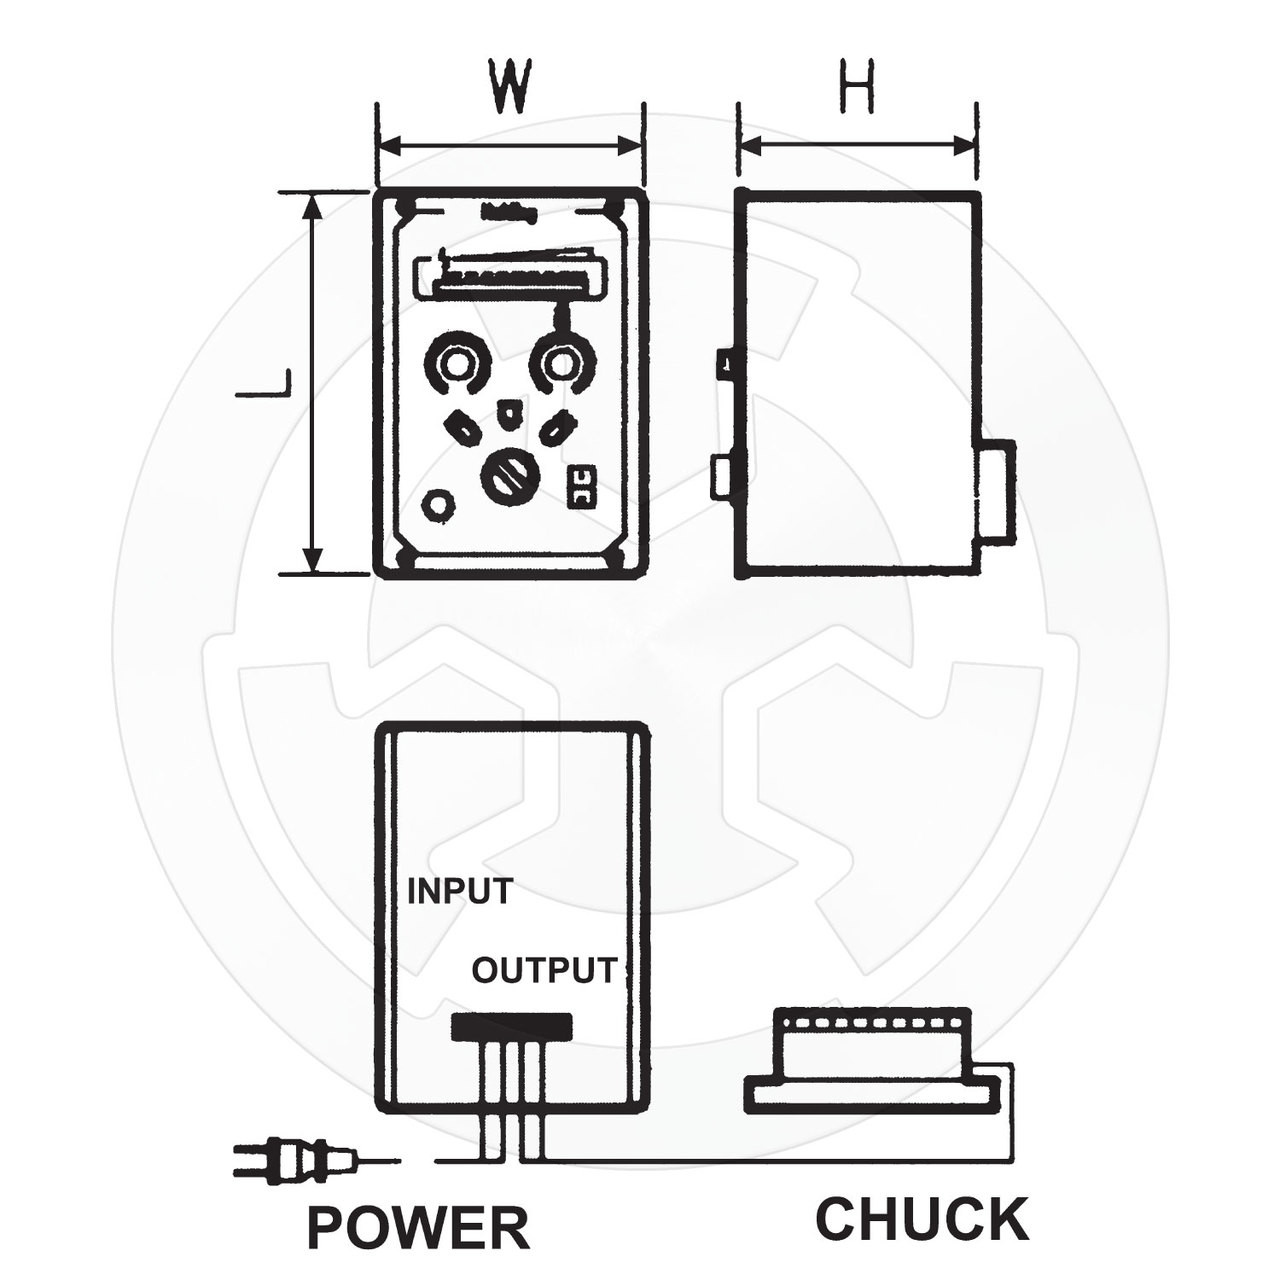 hight resolution of vertex magnetic chuck controller vcc 705 2015 380